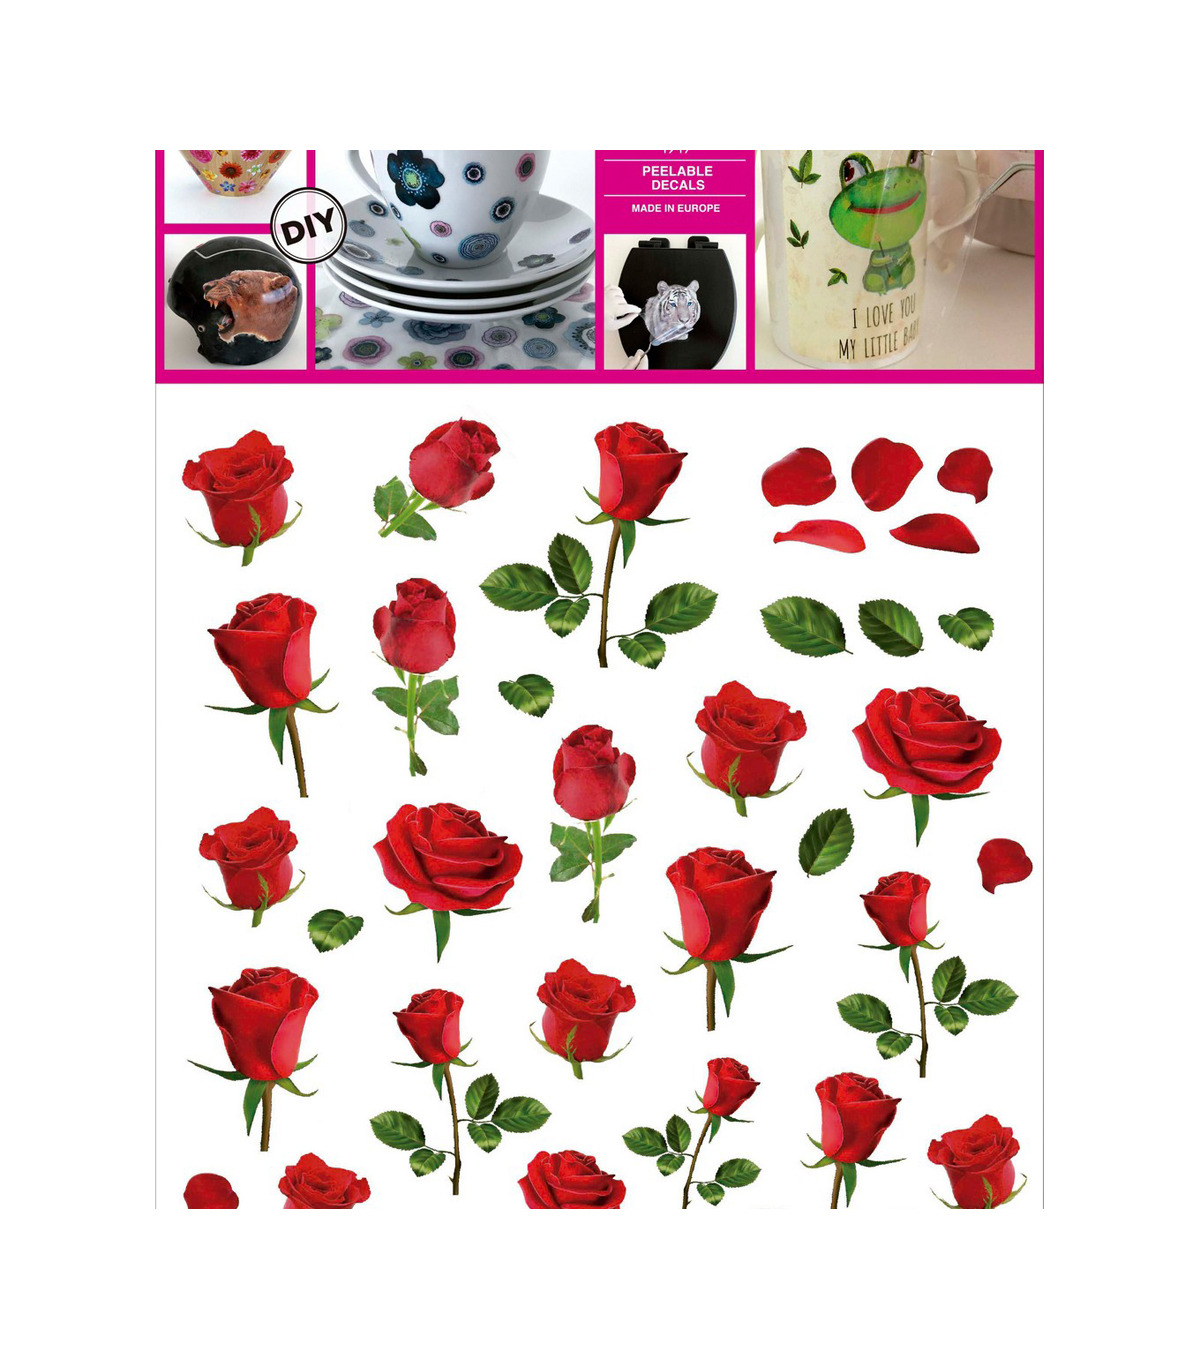 Decorprint DIY Peelable Decals-Smart Roses